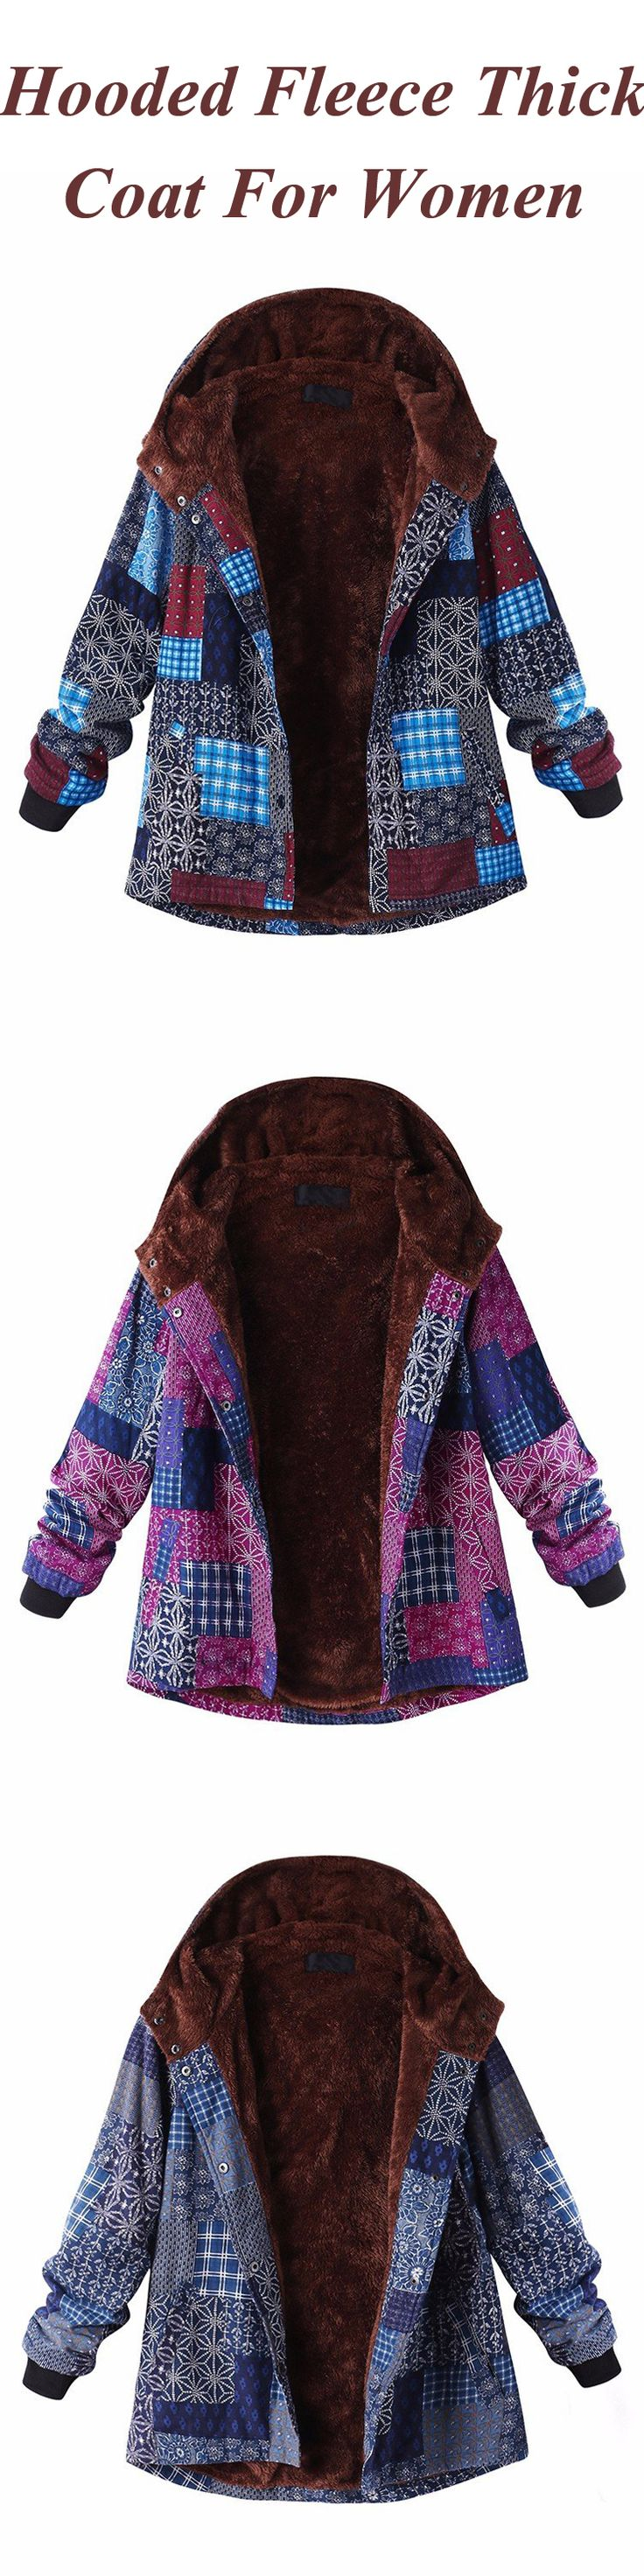 O-NEWE Casual Block Printing Hooded Fleece Thick Coat For Women